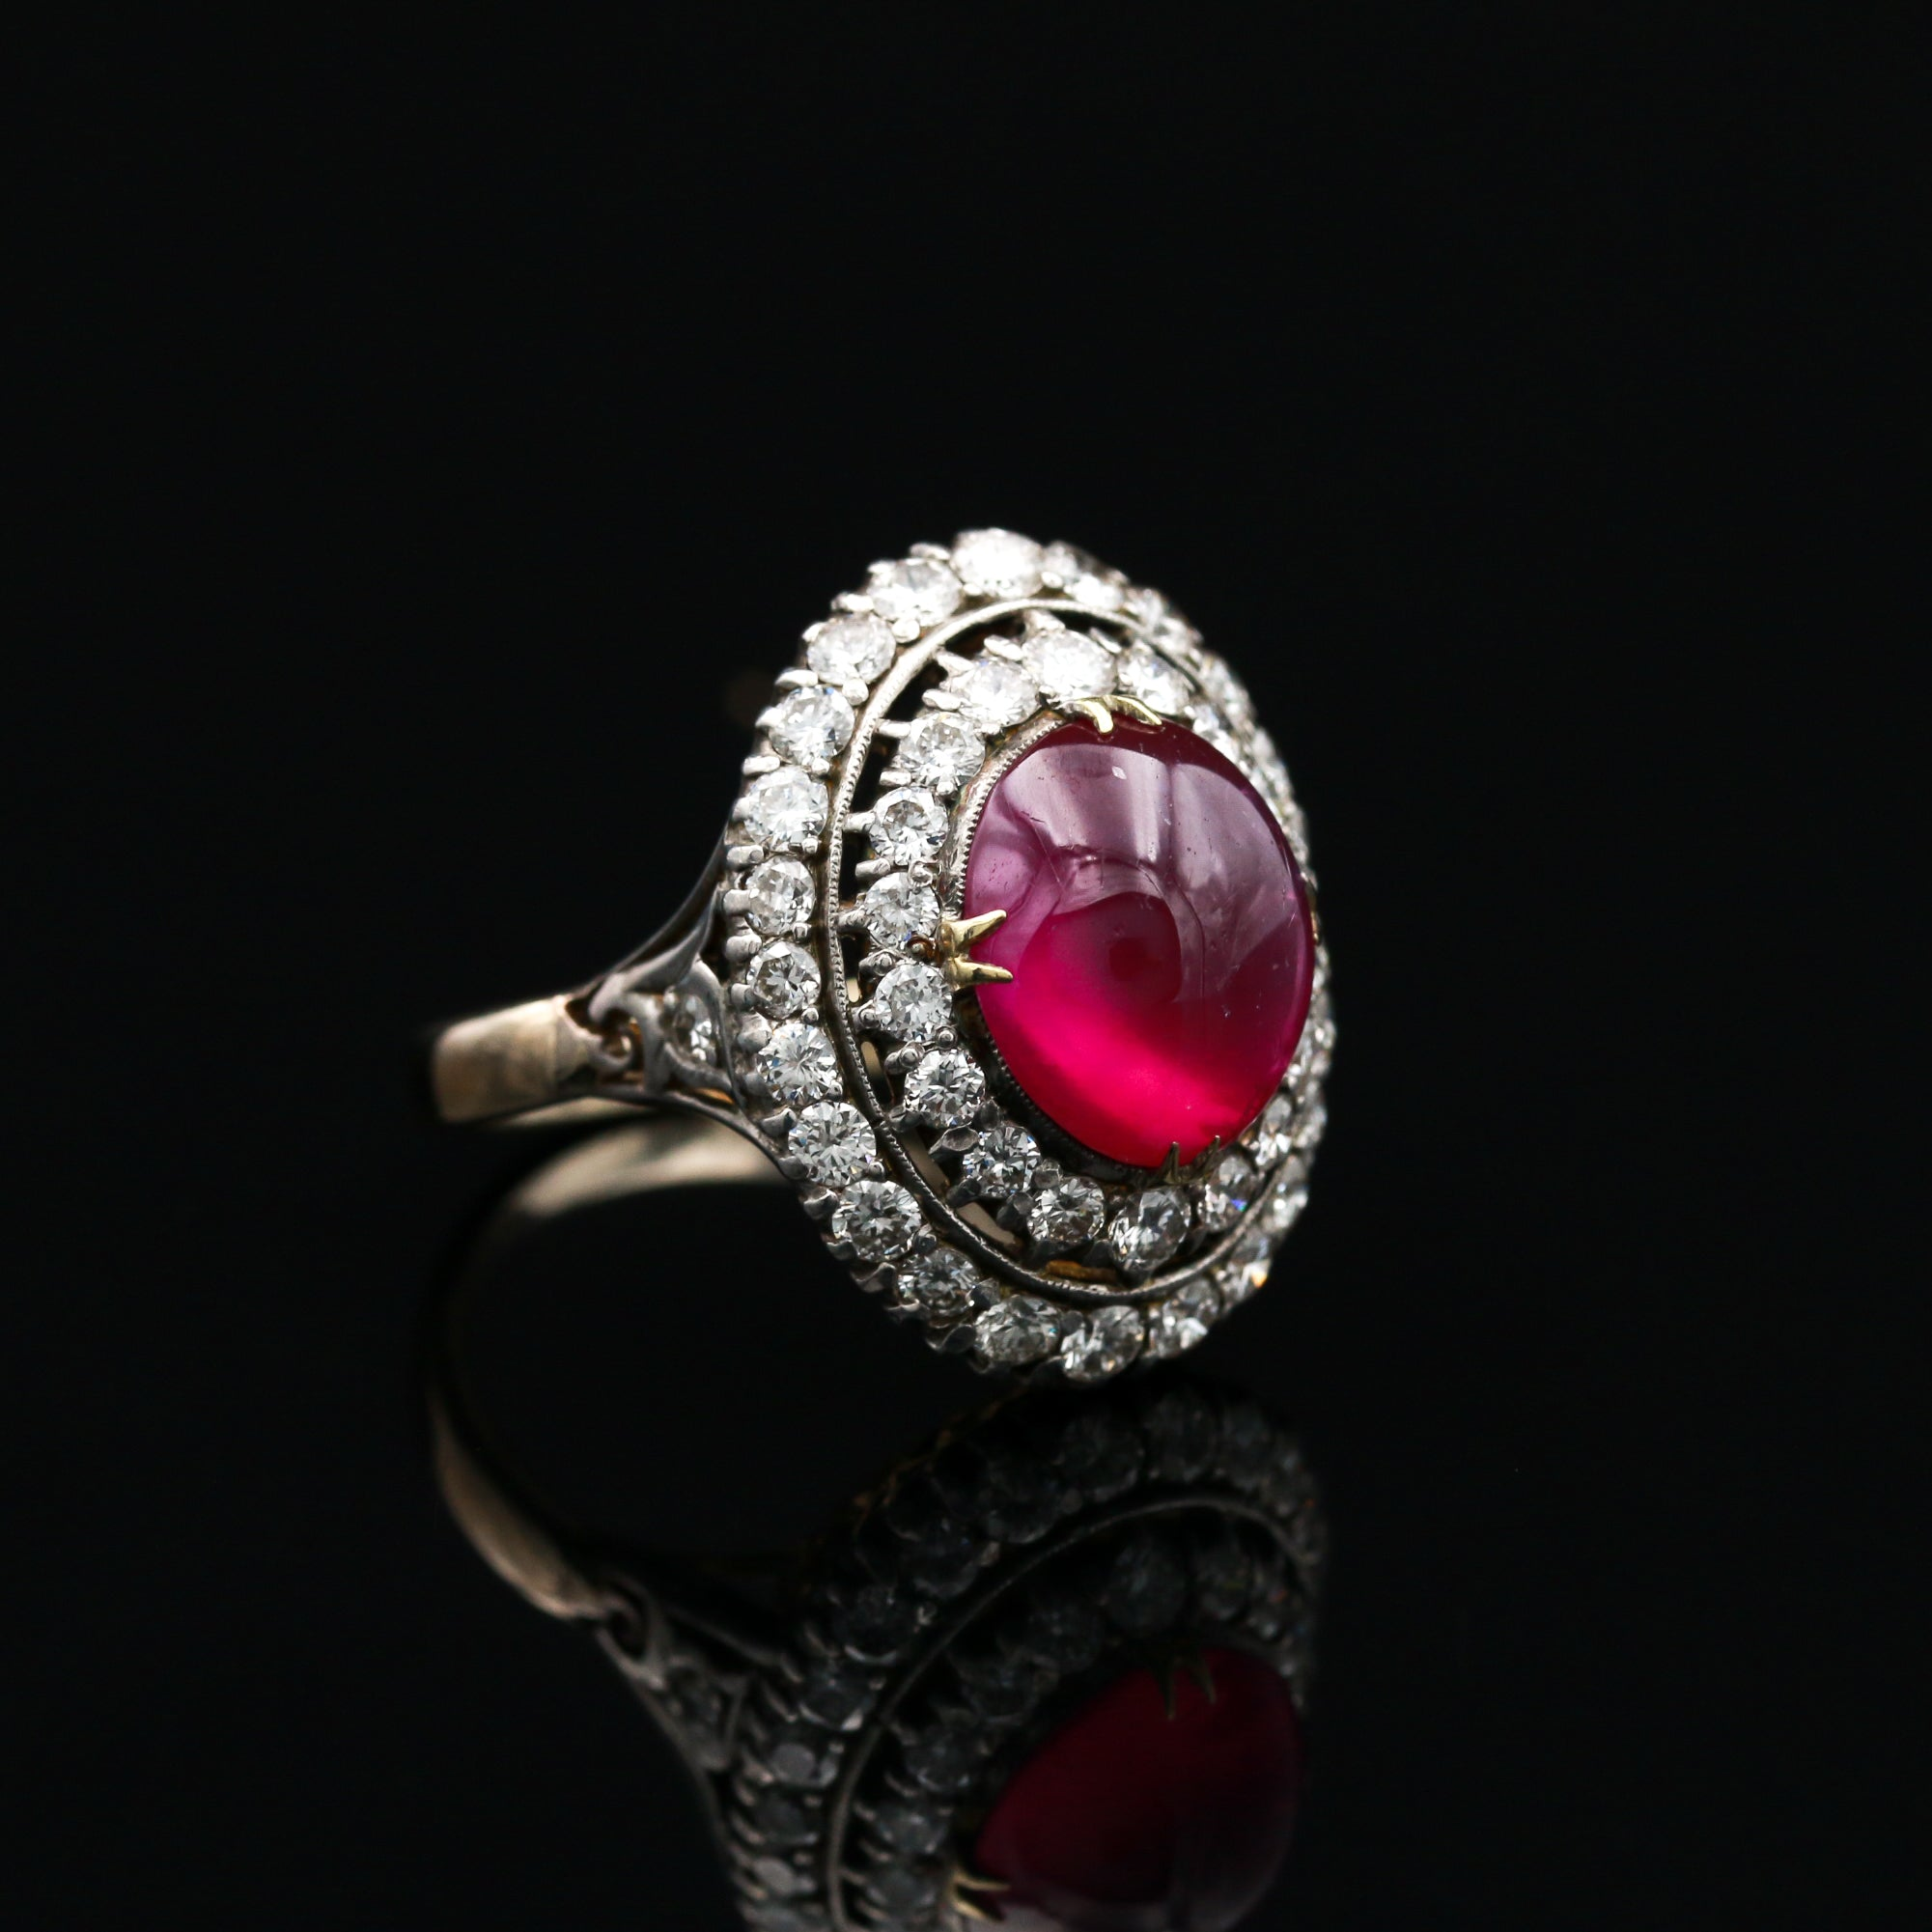 *SOLD* Antique Ring with Natural Burmese Ruby & Diamonds in Two Tone Gold - Sindur